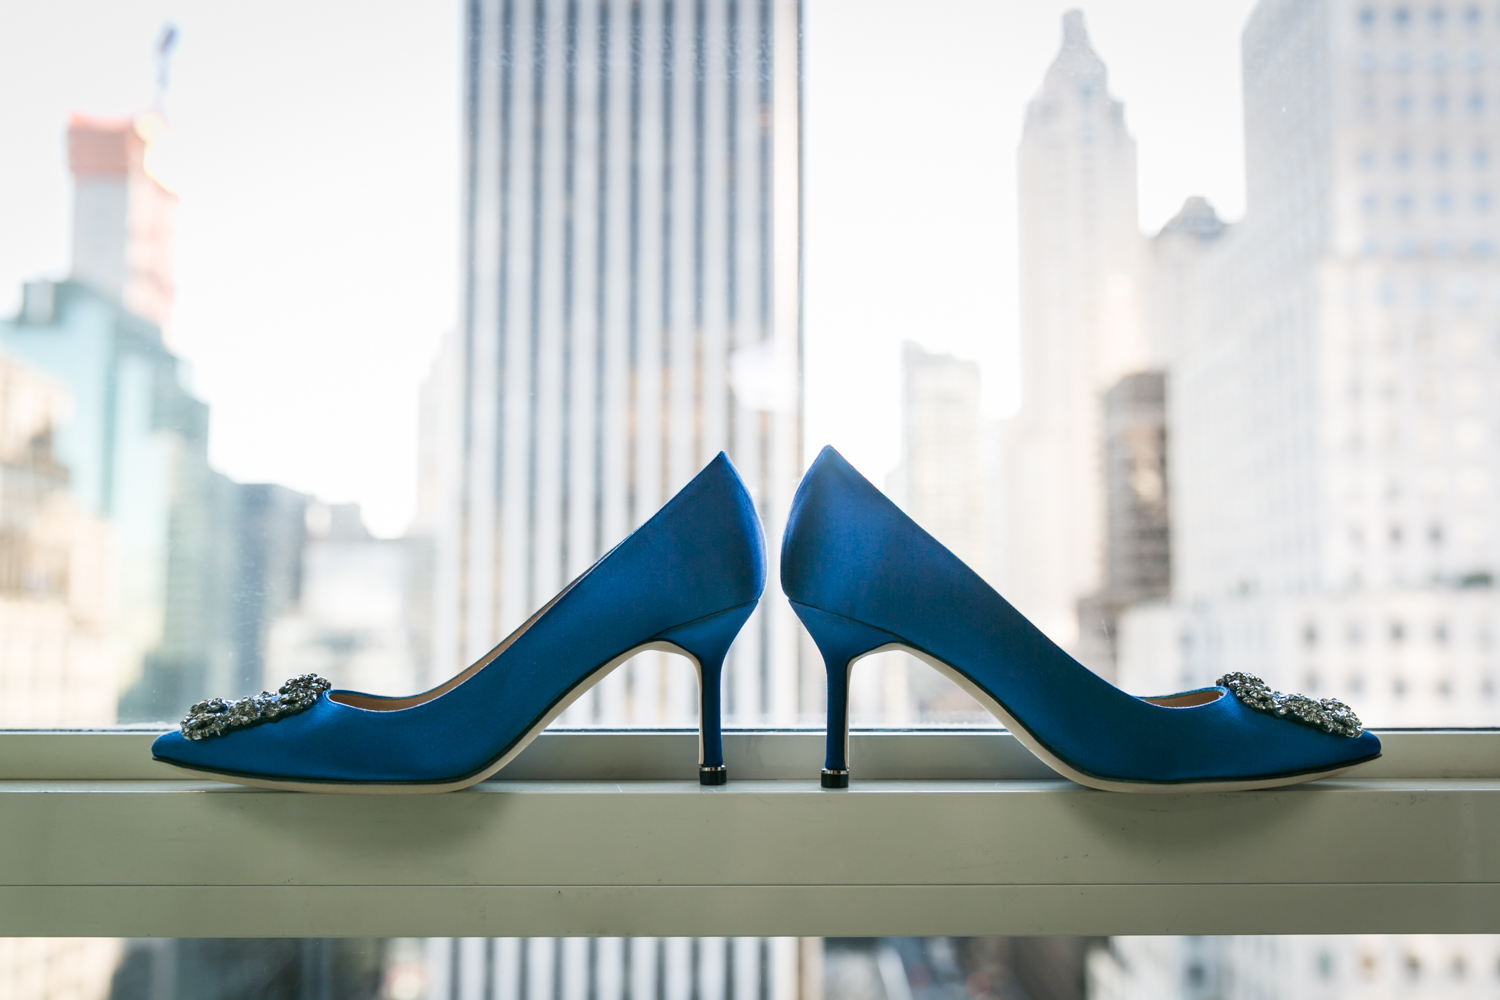 Blue Manolo Blahnik heels in windowsill with NYC skyline in background